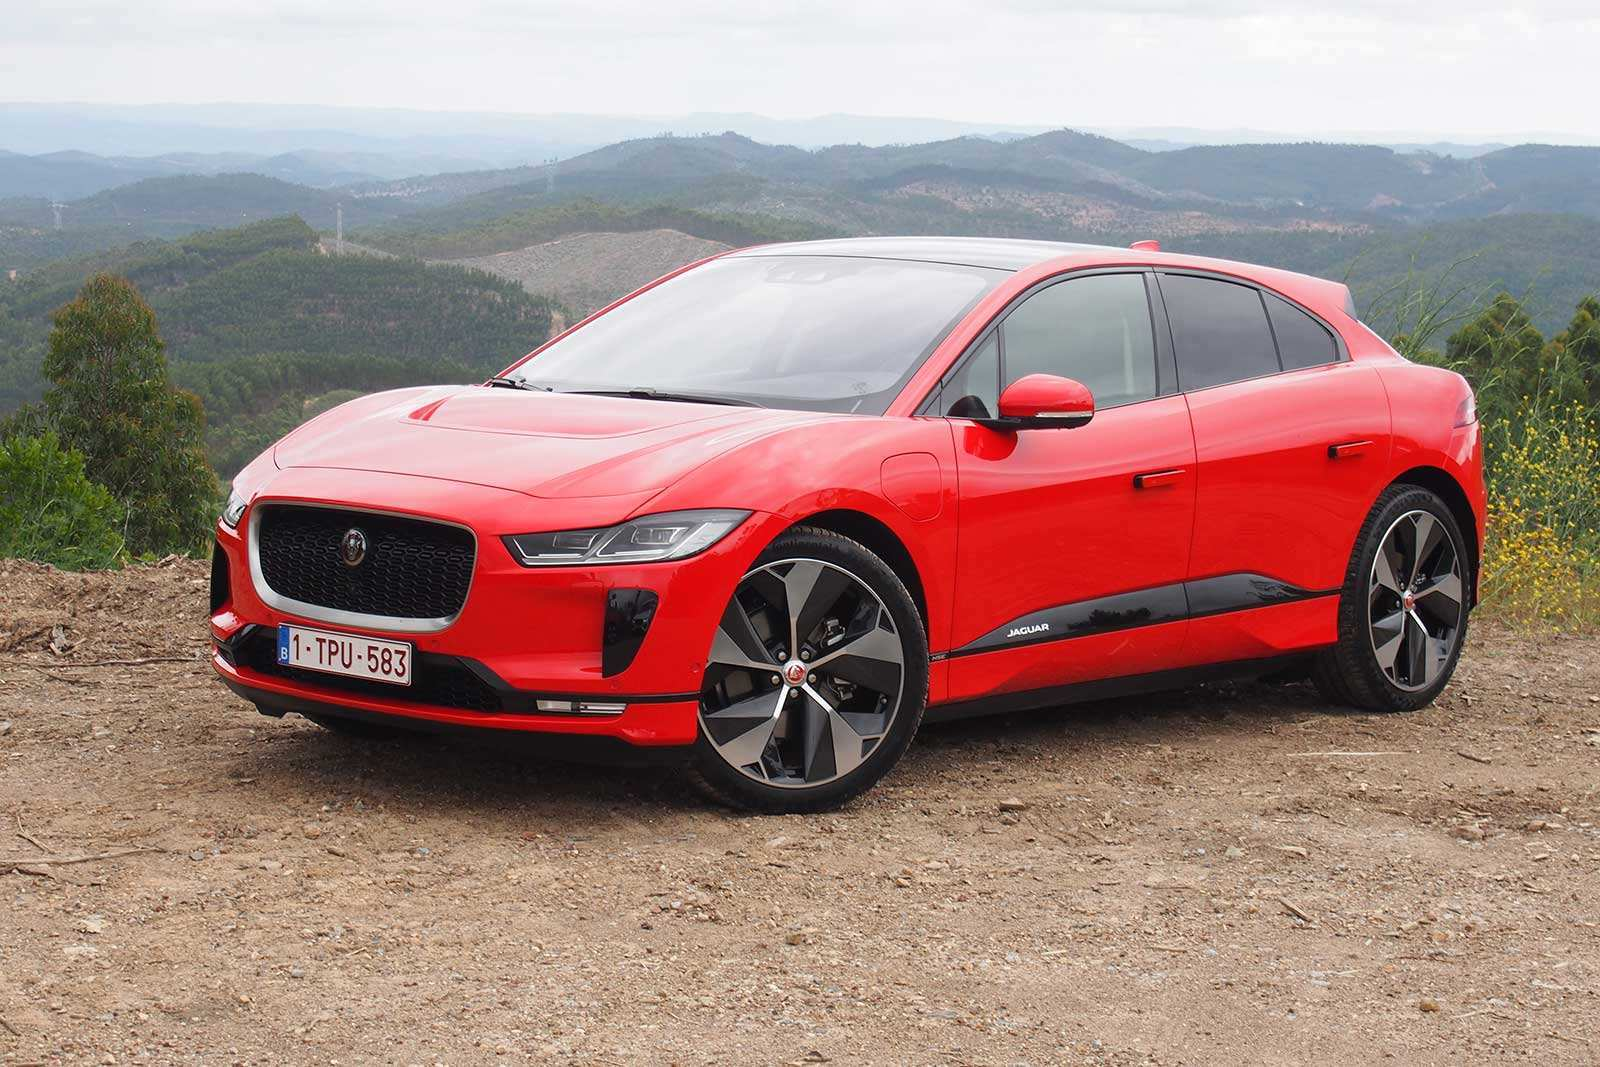 70 All New 2019 Jaguar I Pace Review Research New